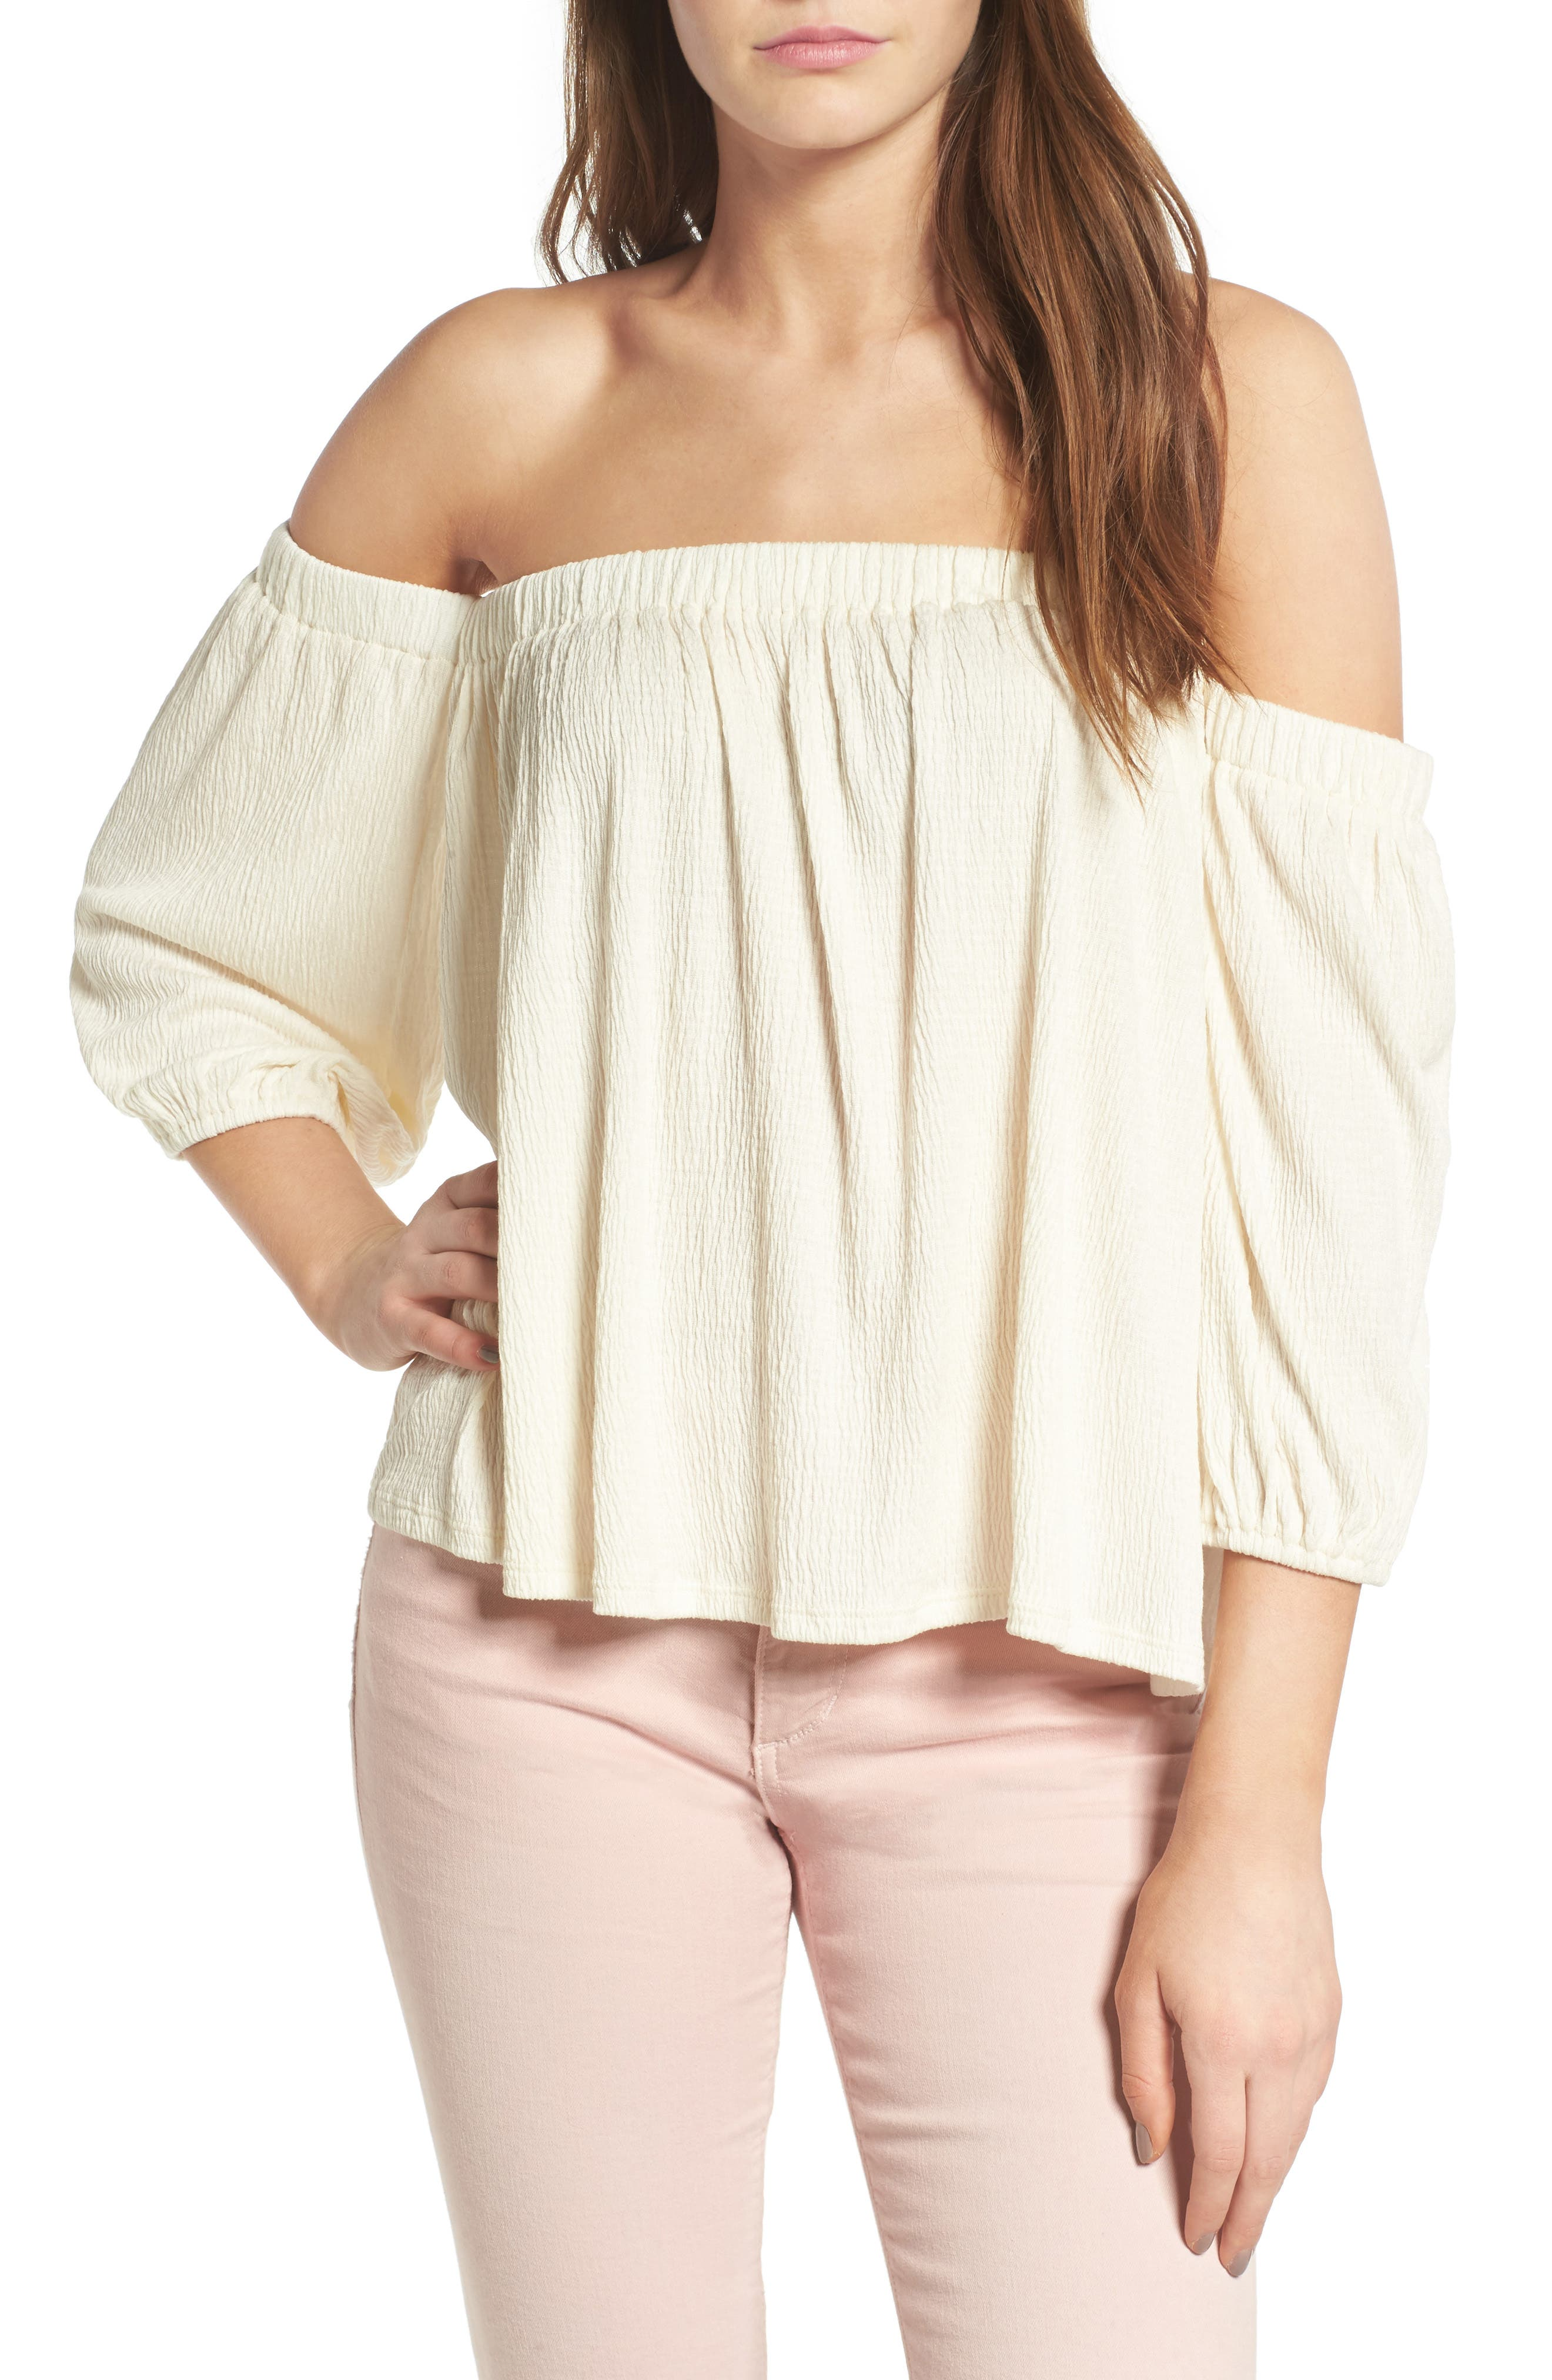 Ella Moss Gionna Off the Shoulder Top